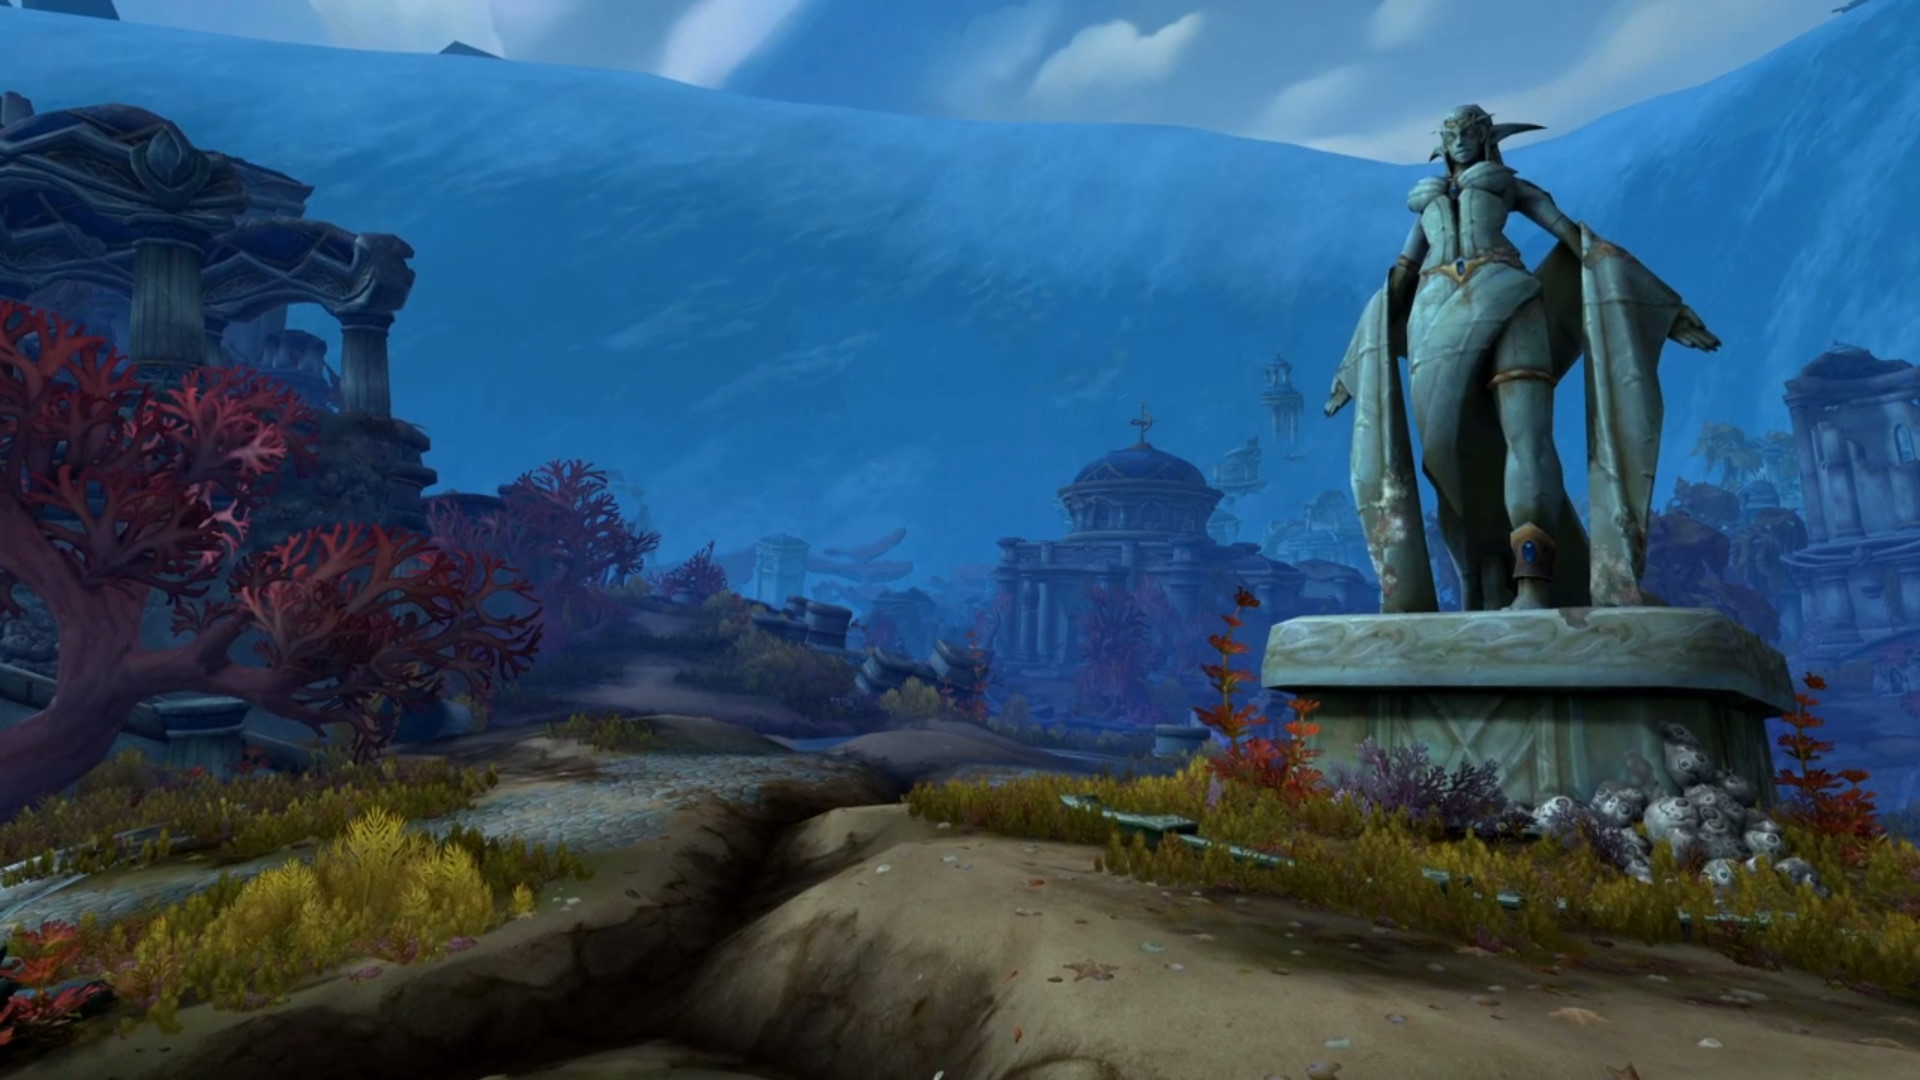 World of Warcraft's massive next update has me excited to play it again